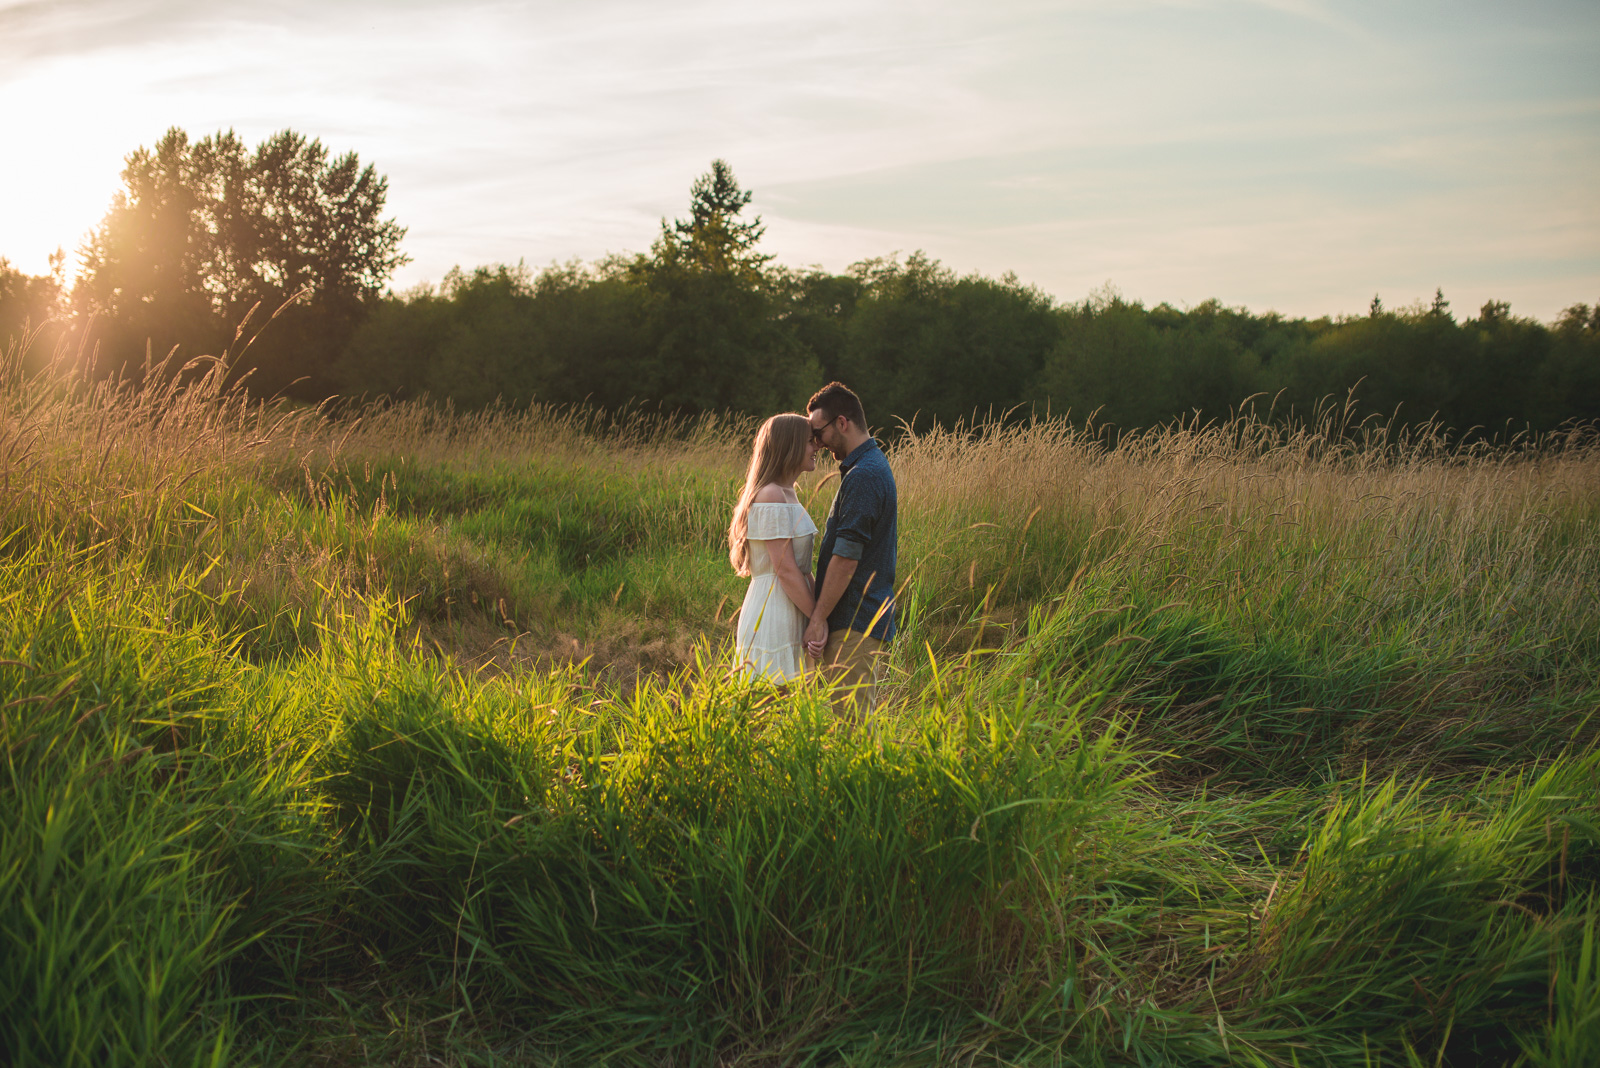 vancouver-island-wedding-photographers-campbell-valley-park-engagement-session-10.jpg